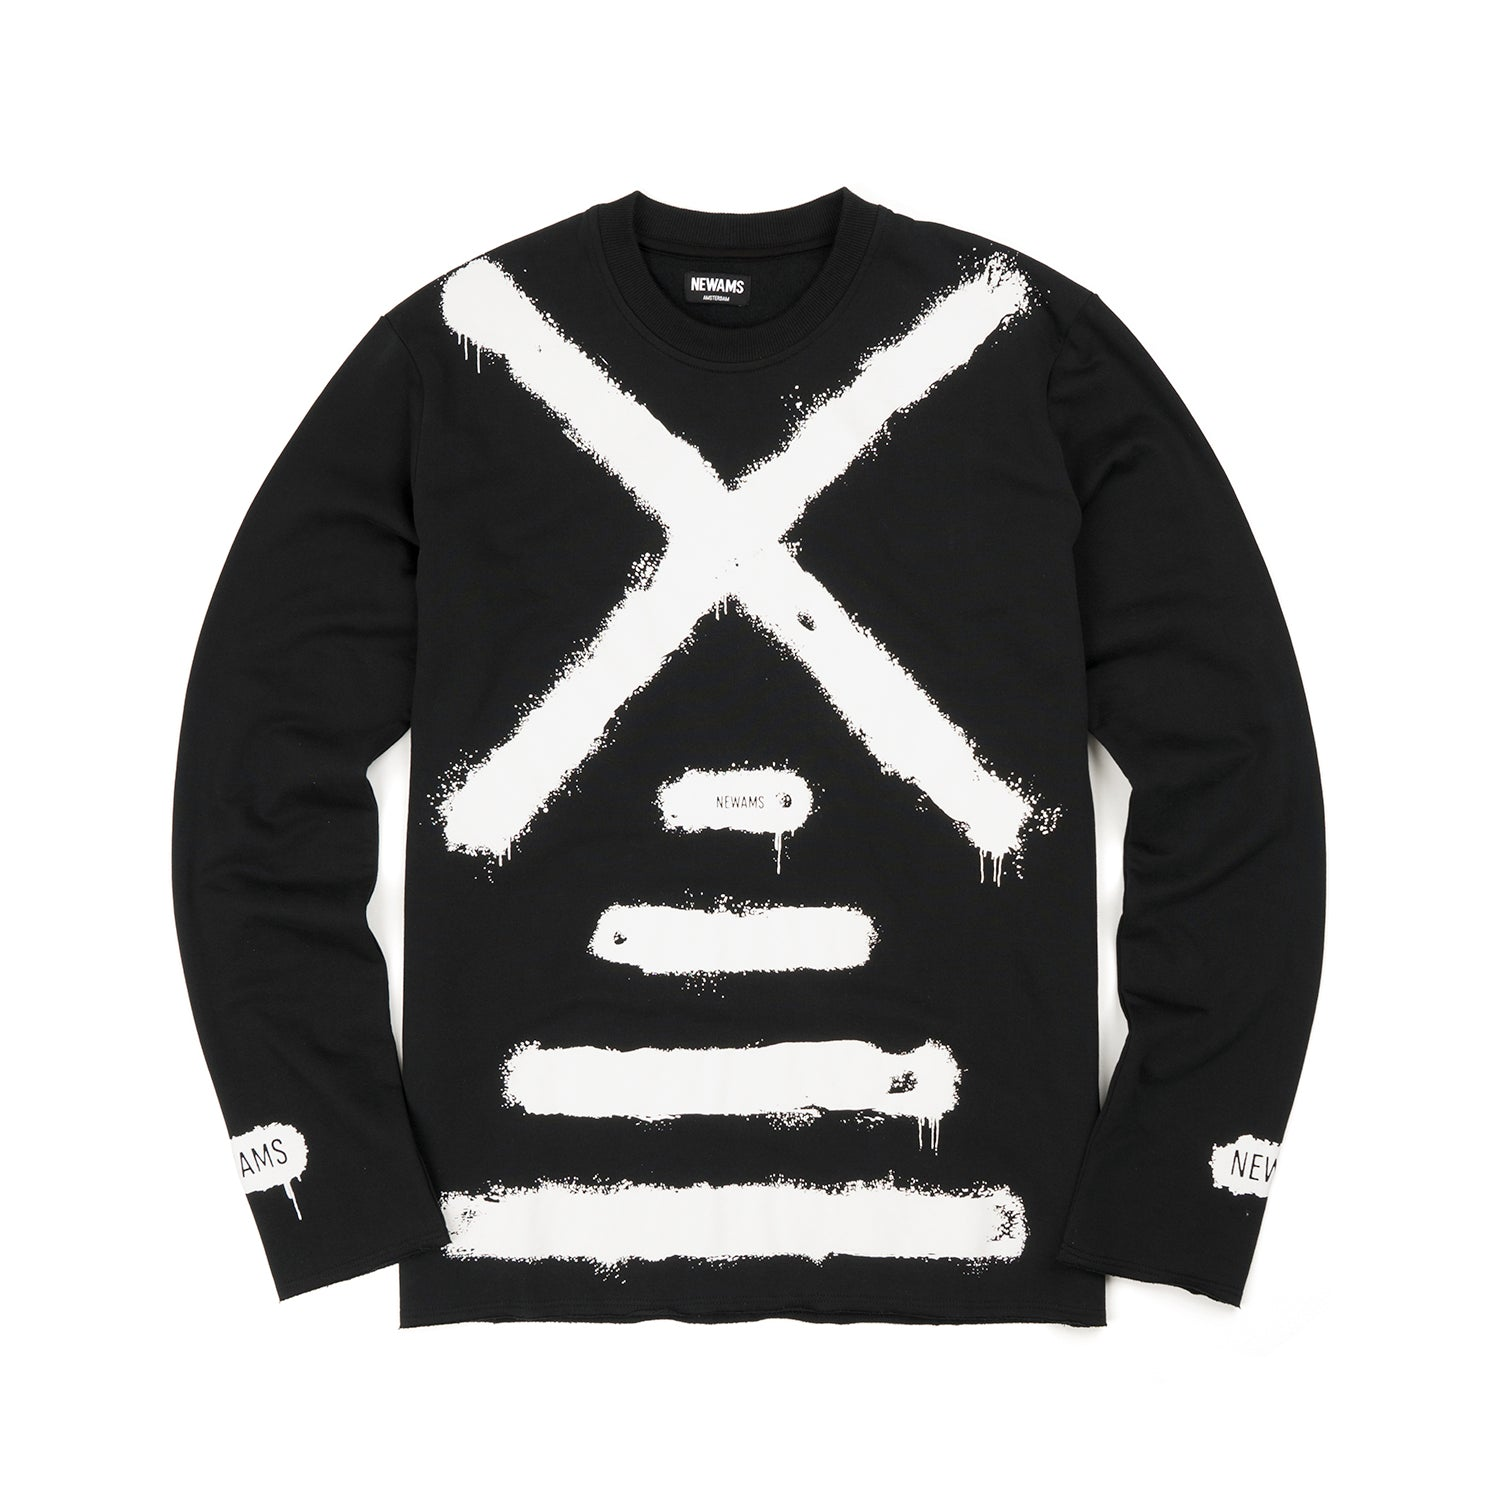 NEWAMS Painted Mill Sweater Black